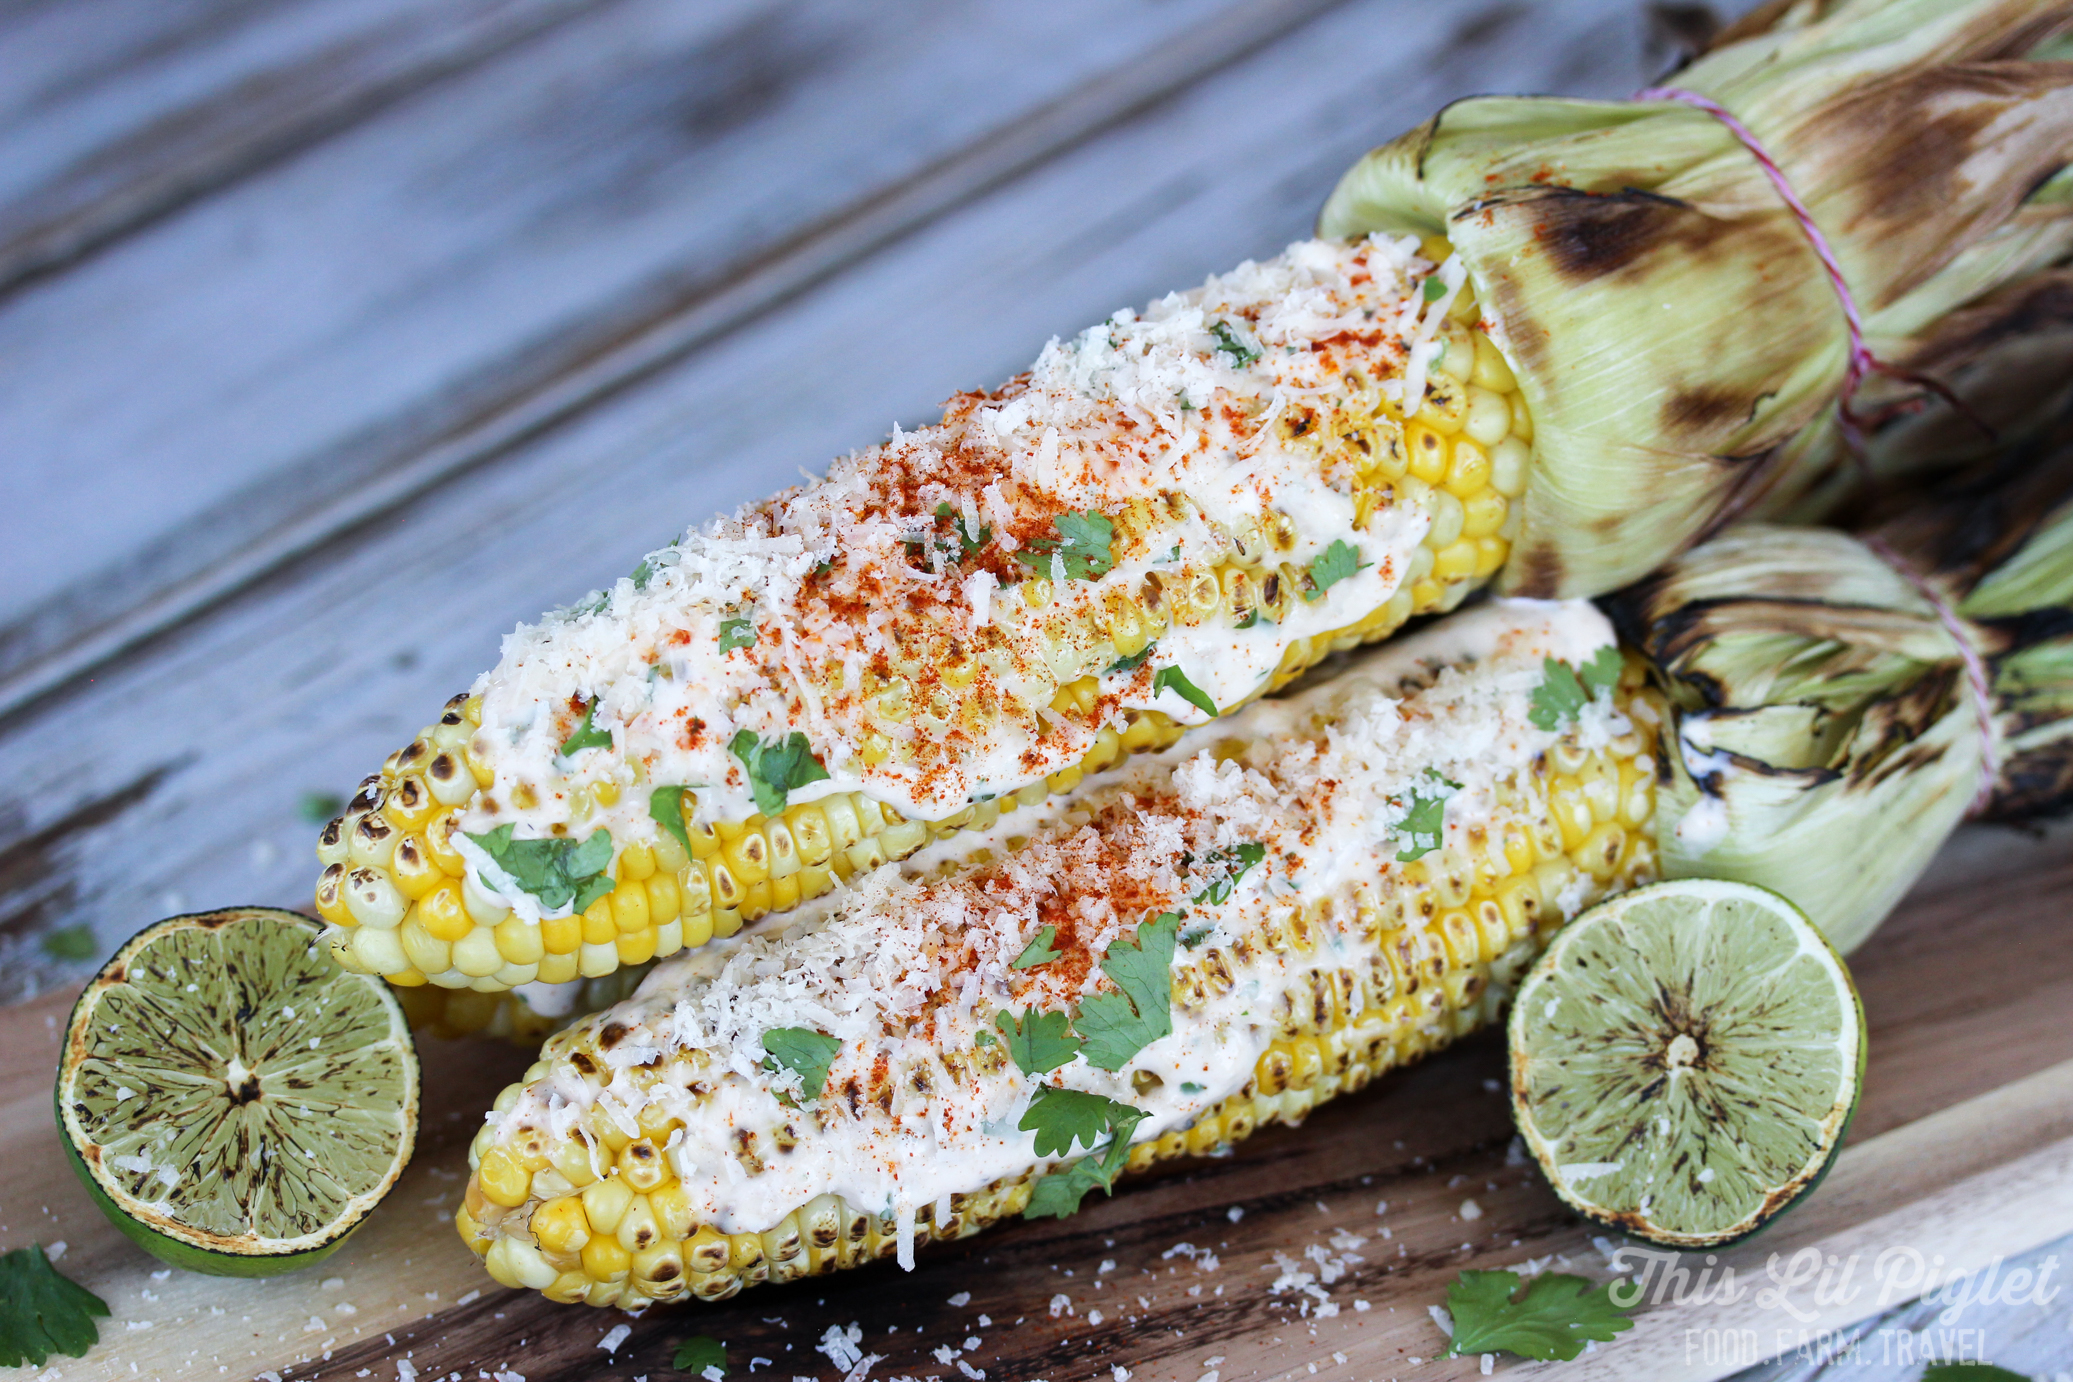 Grilled Mexican Street Corn for Cinco de Mayo // thislilpiglet.net